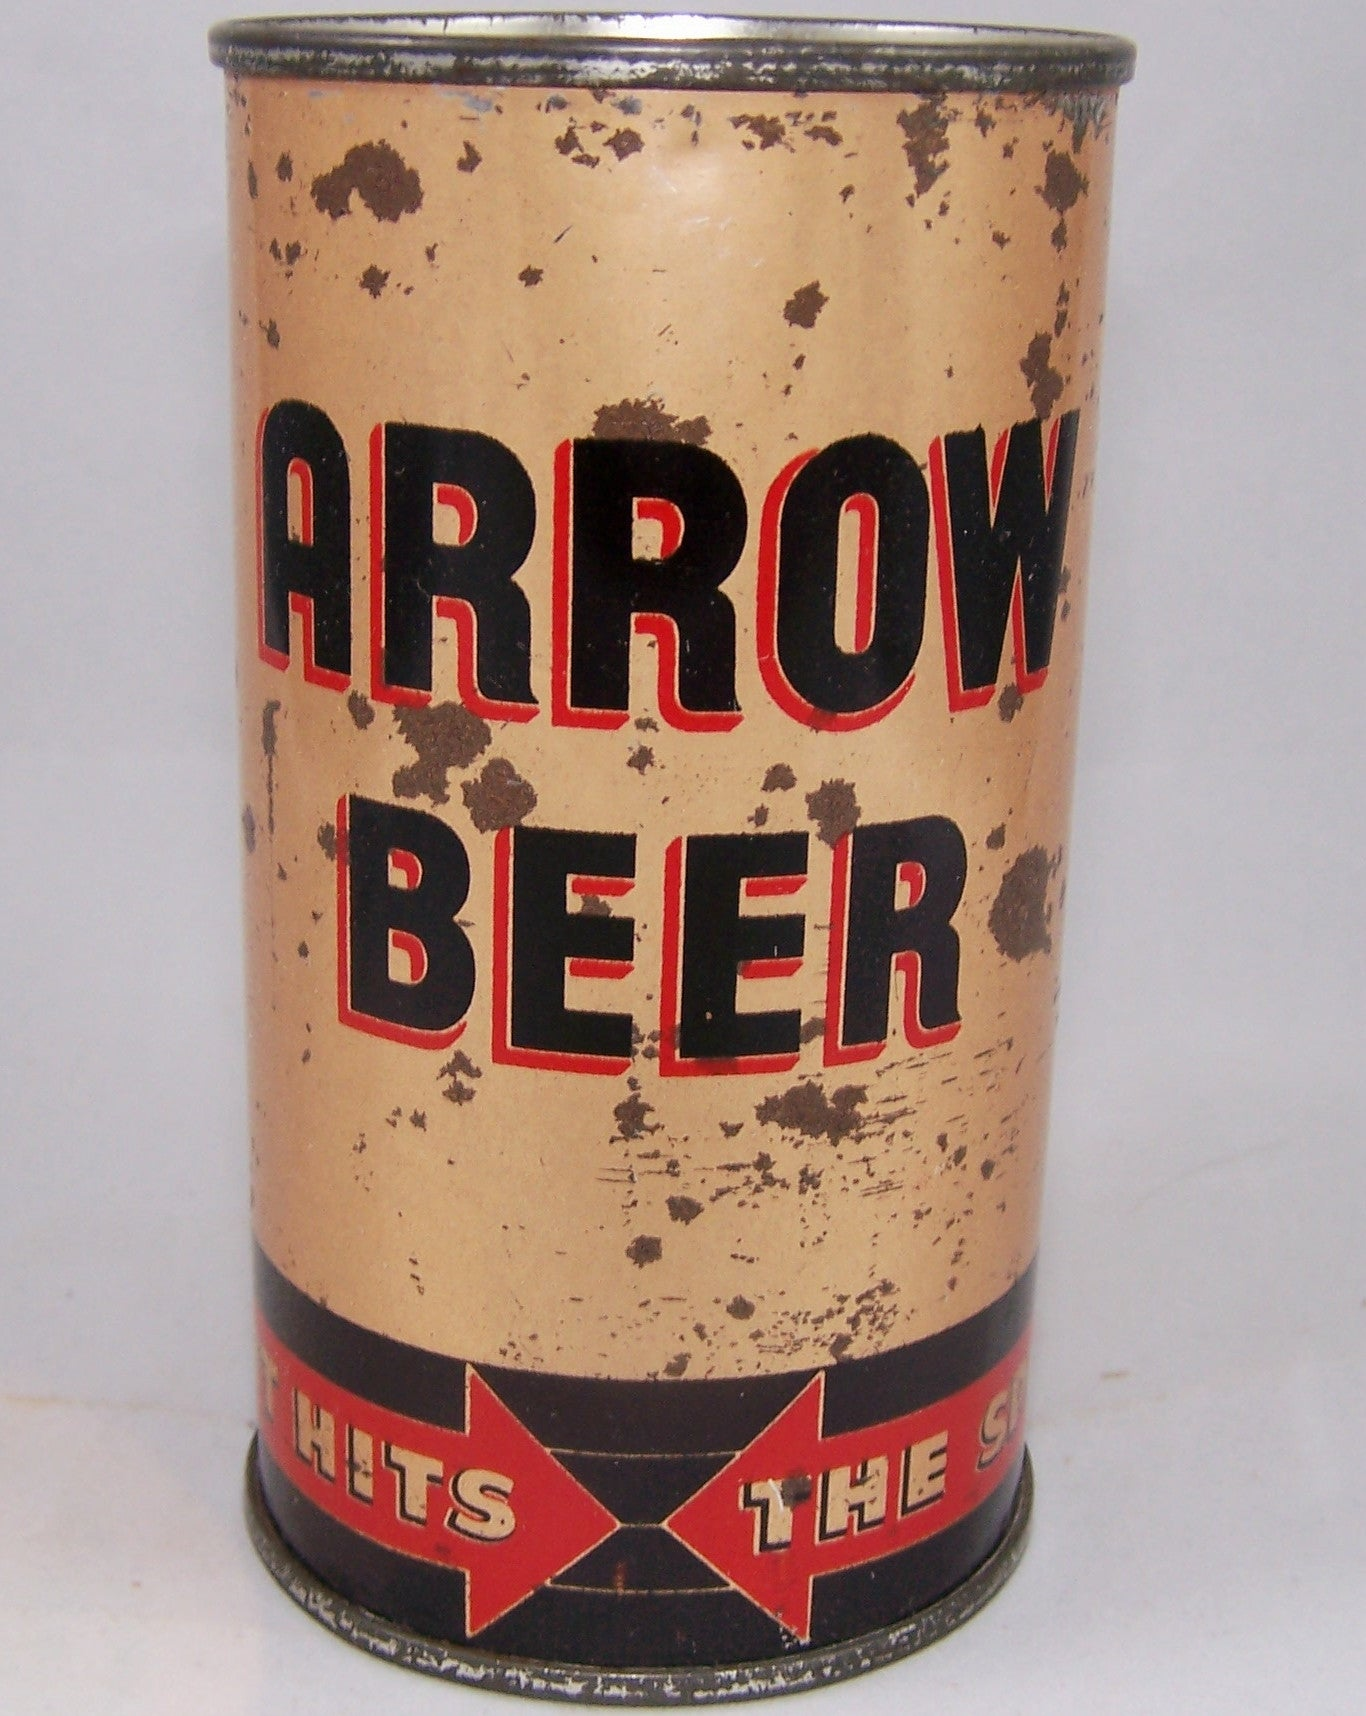 Arrow Beer (It Hits The Spot) Lilek # 46, Grade 2+ sold 2/13/16